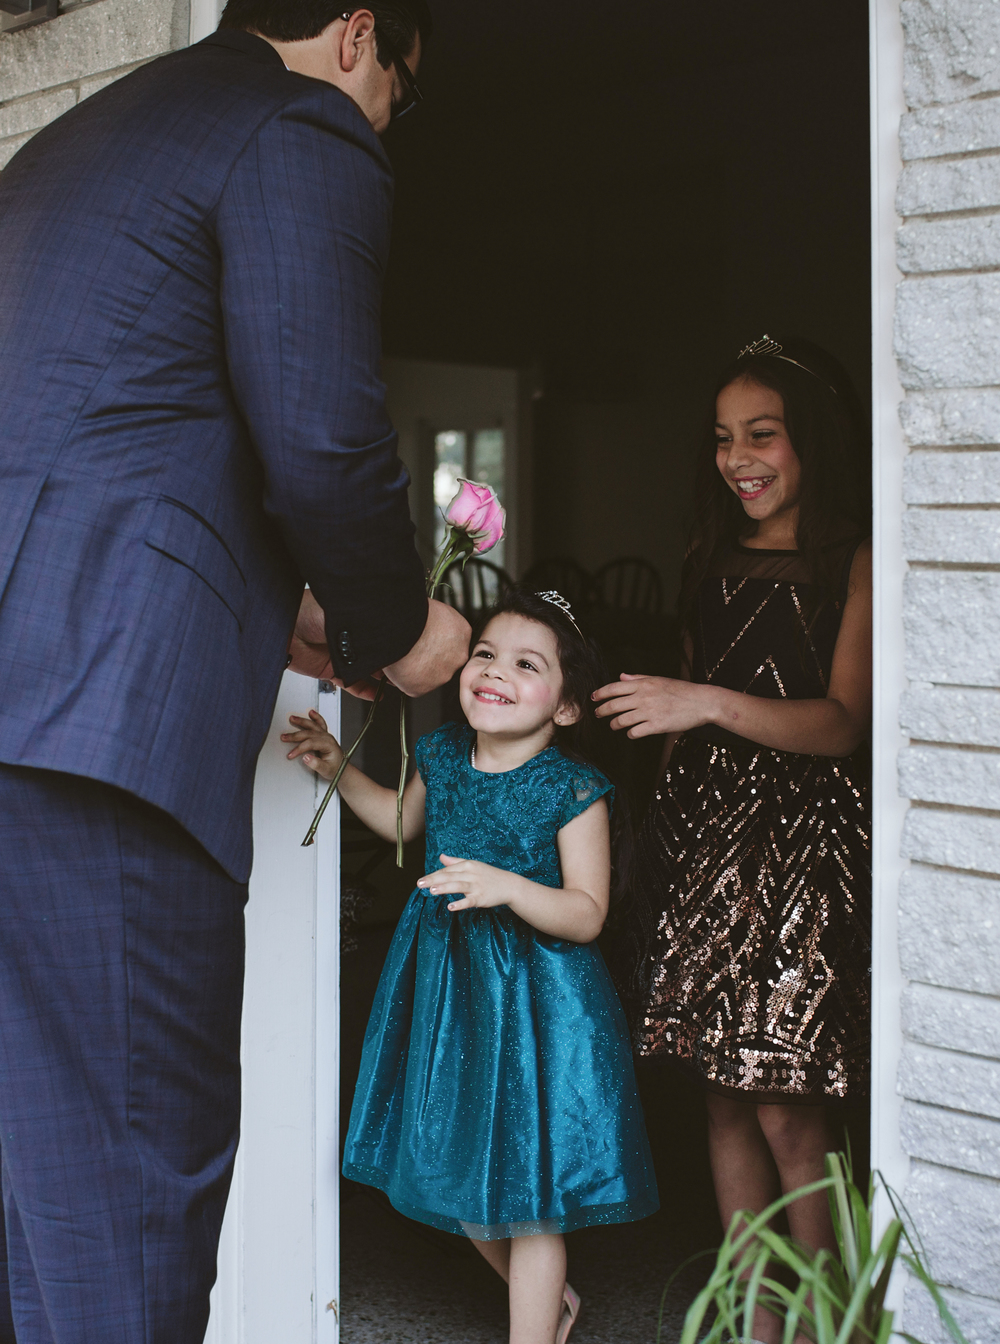 Daddy daughter dance | Vanessa Boy |VANESSABOY.COM-135.com final set .jpg